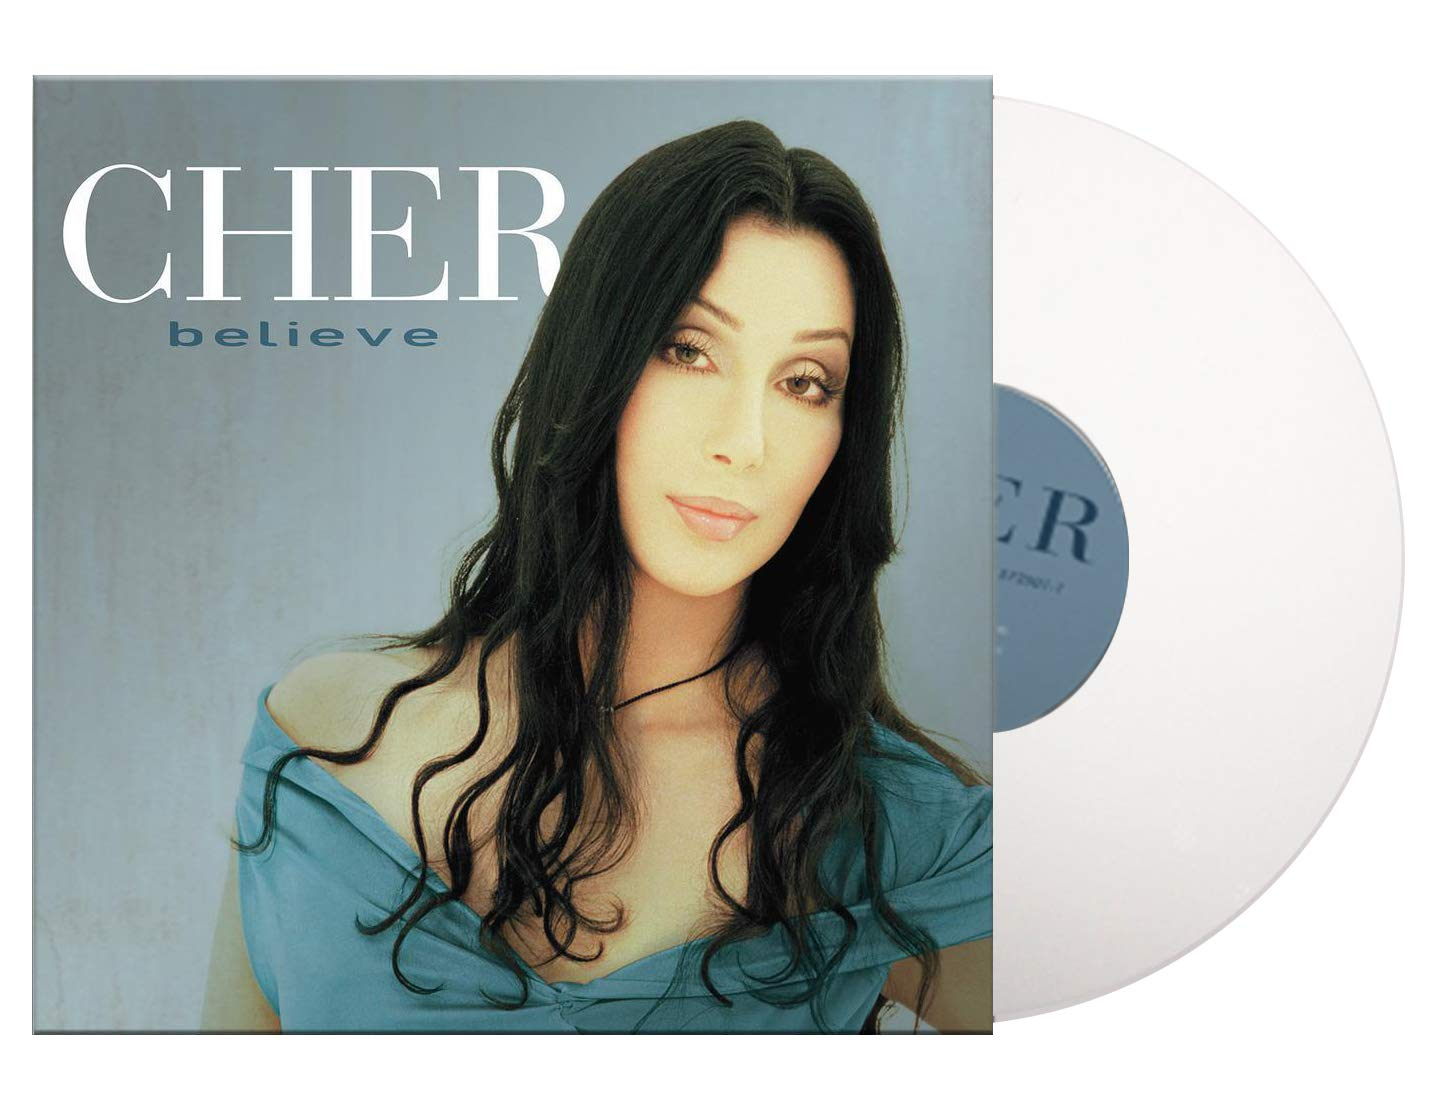 Cher - Believe Exclusive Edition White Vinyl LP [Condition- VG+/NM] by Barnes Noble Consign